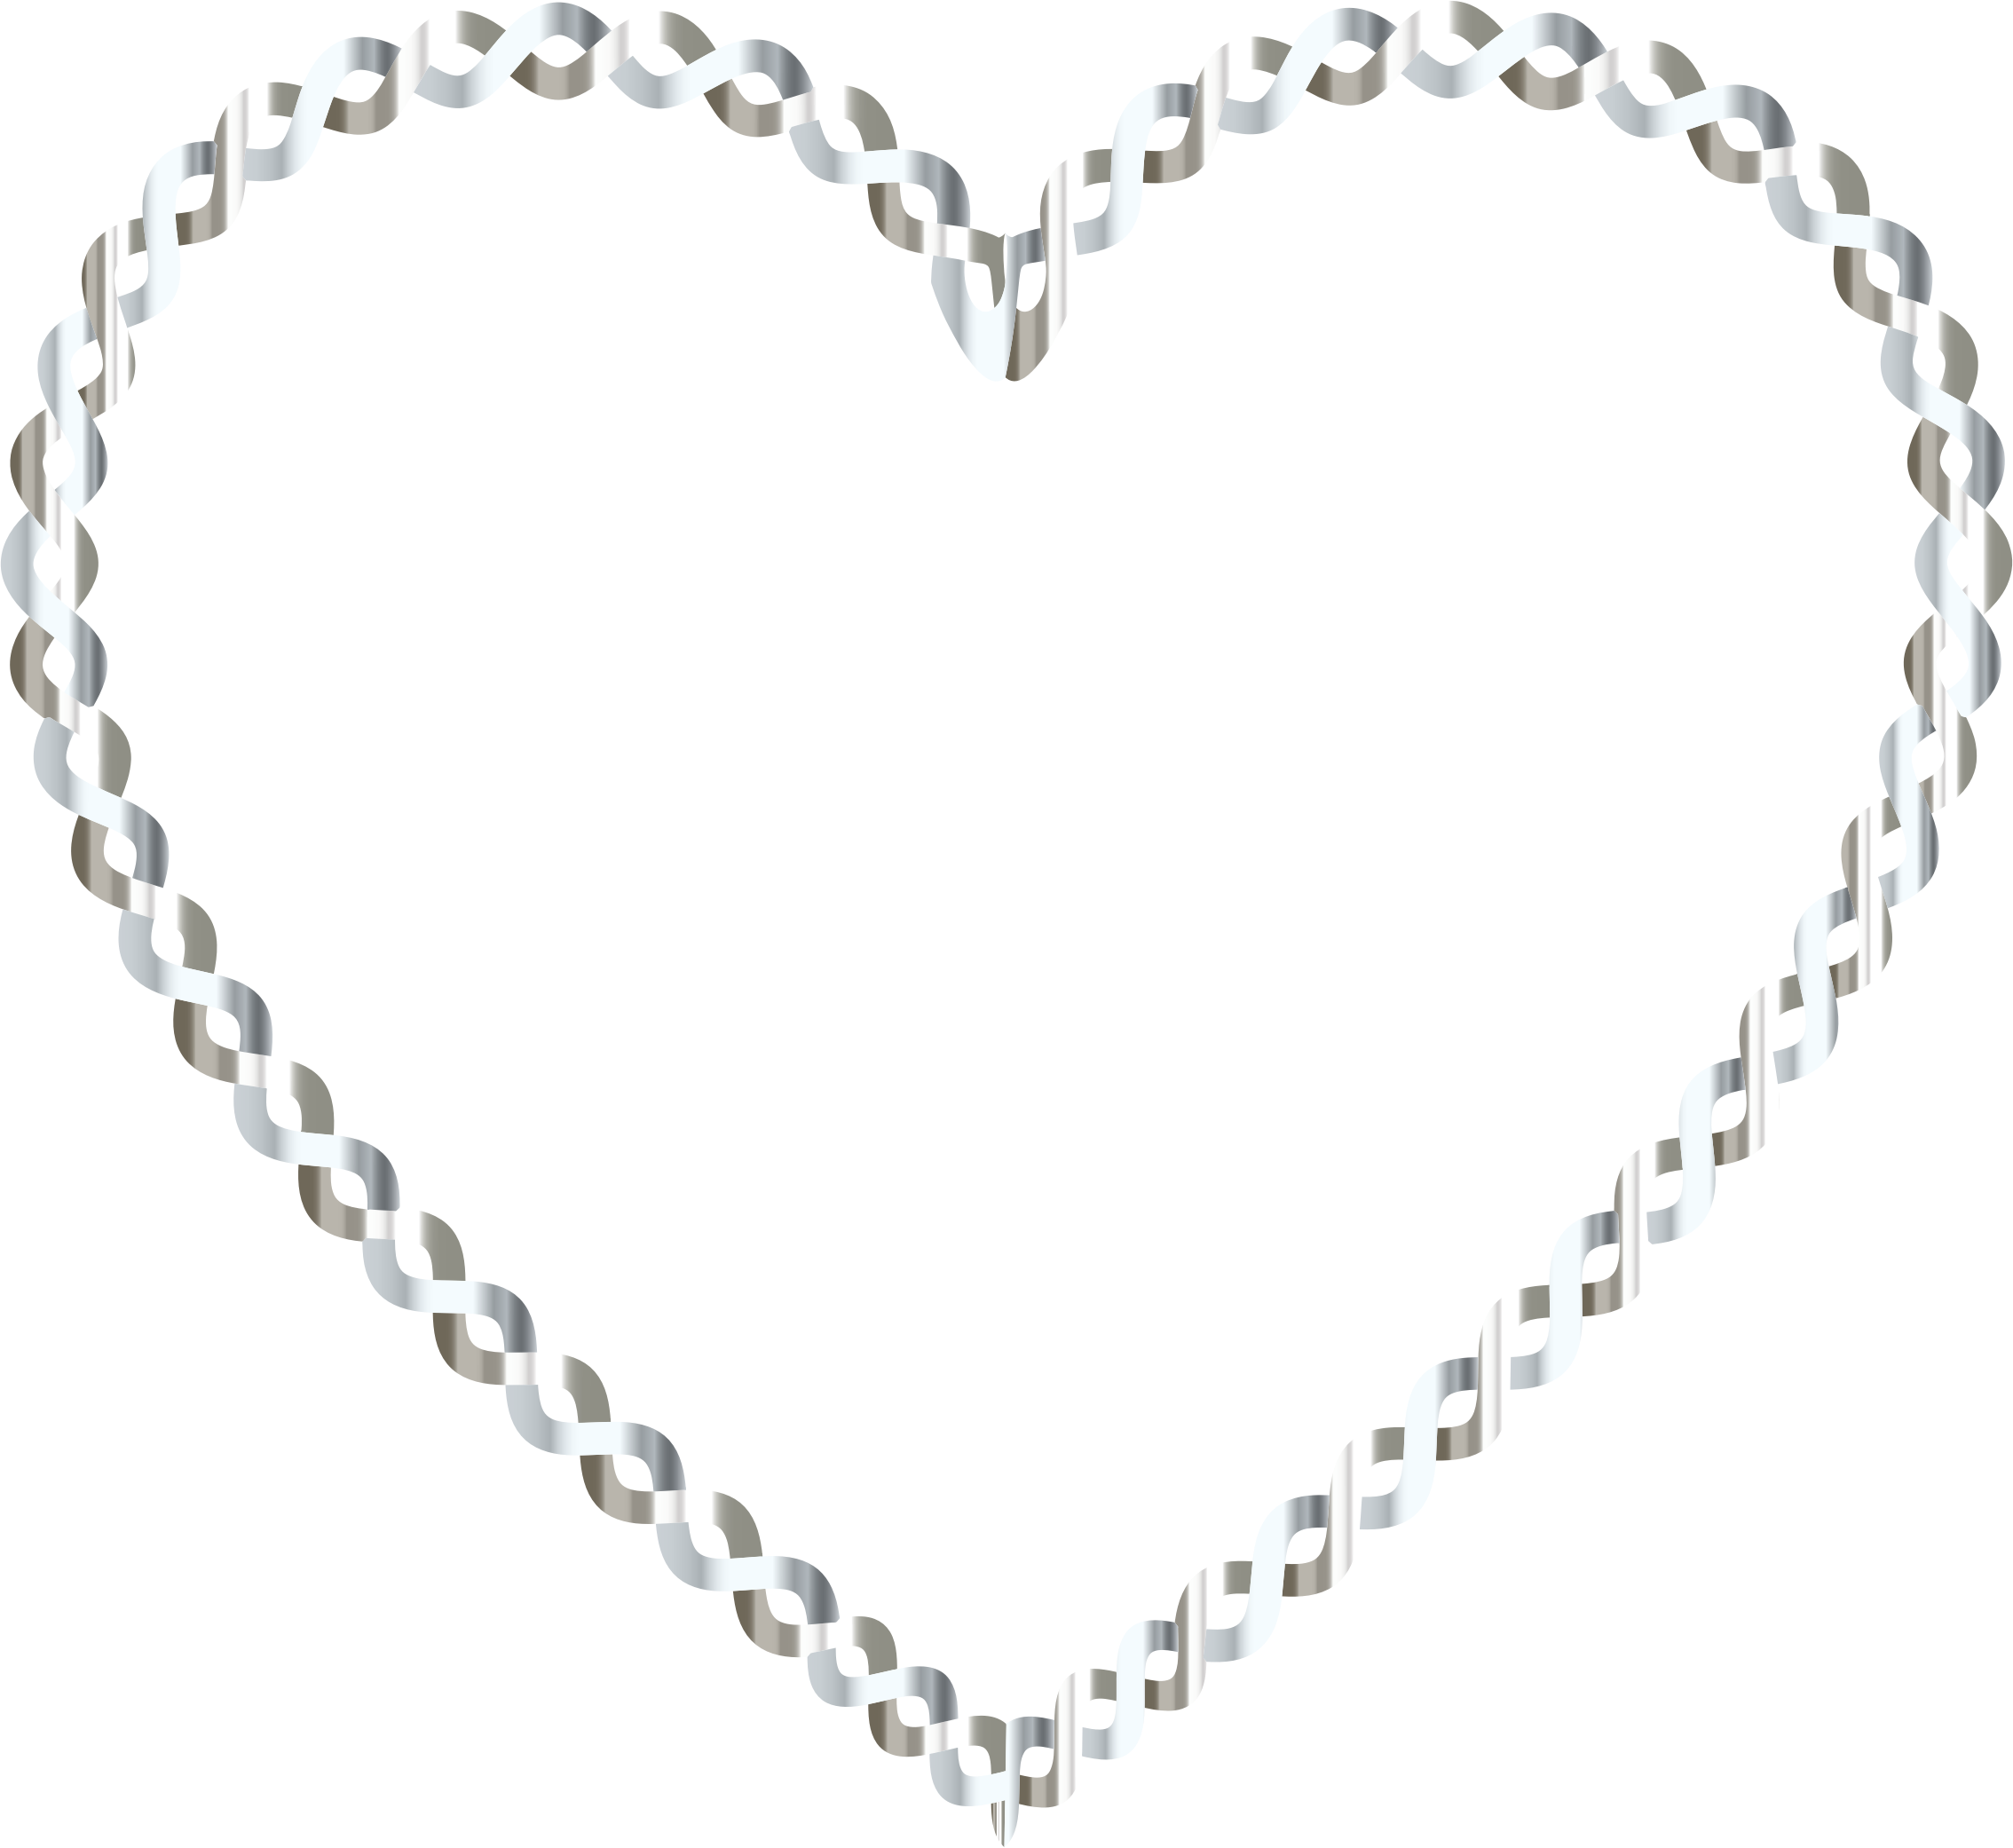 Intertwined Heart 5 No Background by GDJ